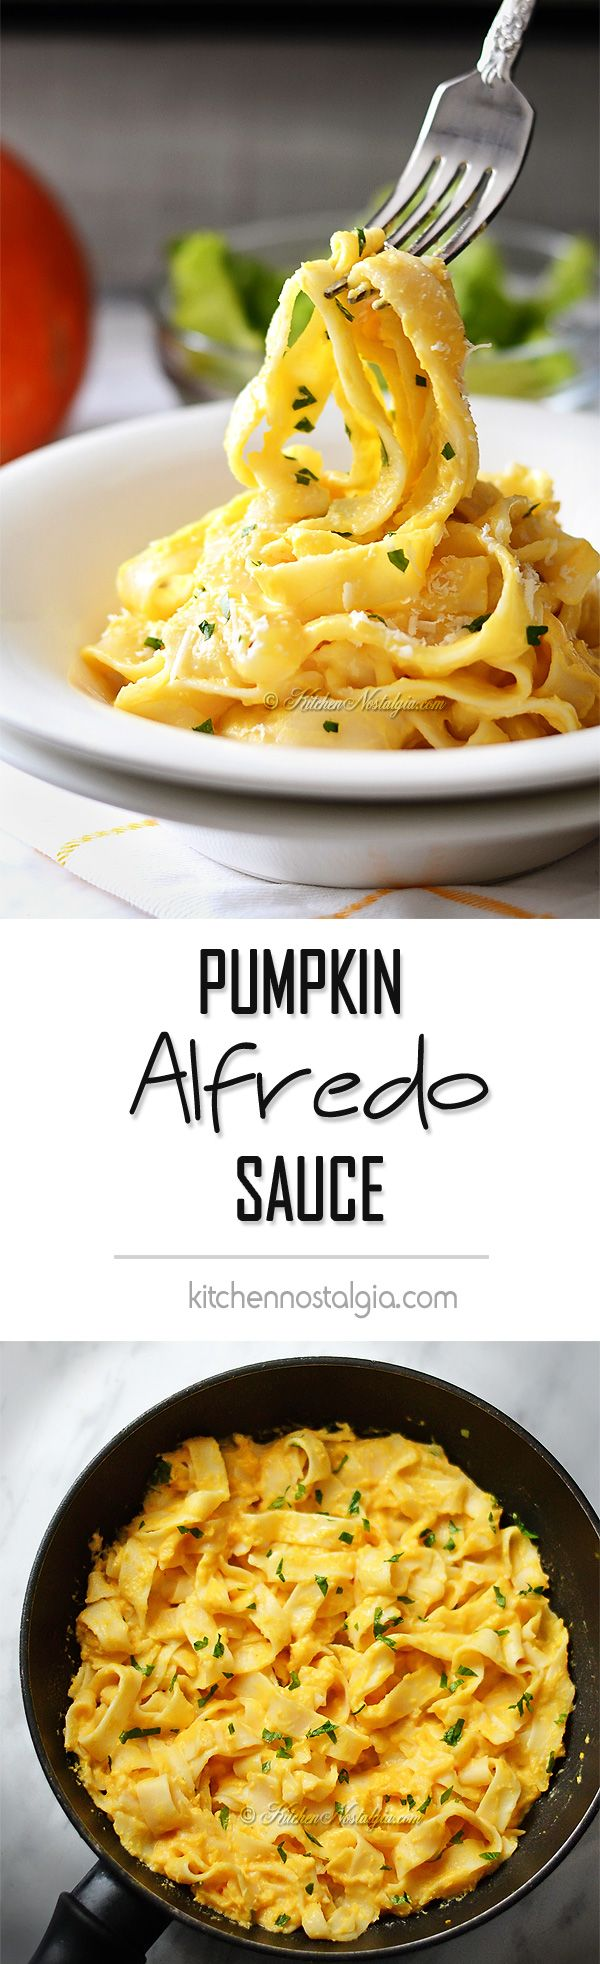 Pumpkin Alfredo Sauce - light and healthy, favorite cream sauce served with fettuccine. You won't believe how easy it is to make this sauce from scratch right at home. Healthier homemade version allows you to enjoy it even in the middle of the week. It doesn't get much better then this! - kitchennostalgia.com